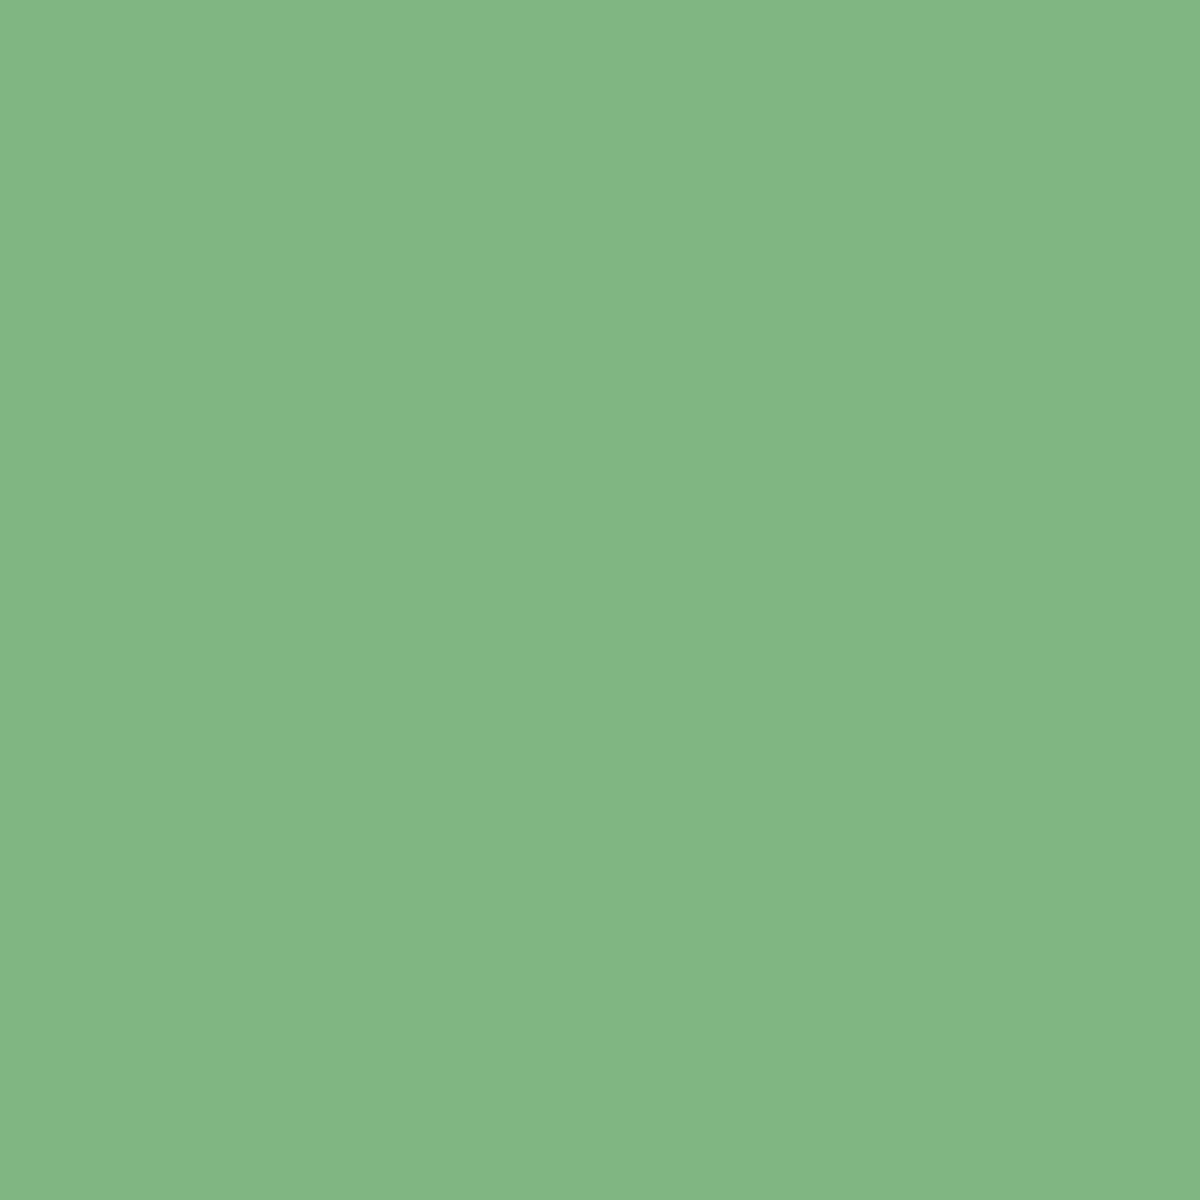 1200x1200 - Solid Green 3